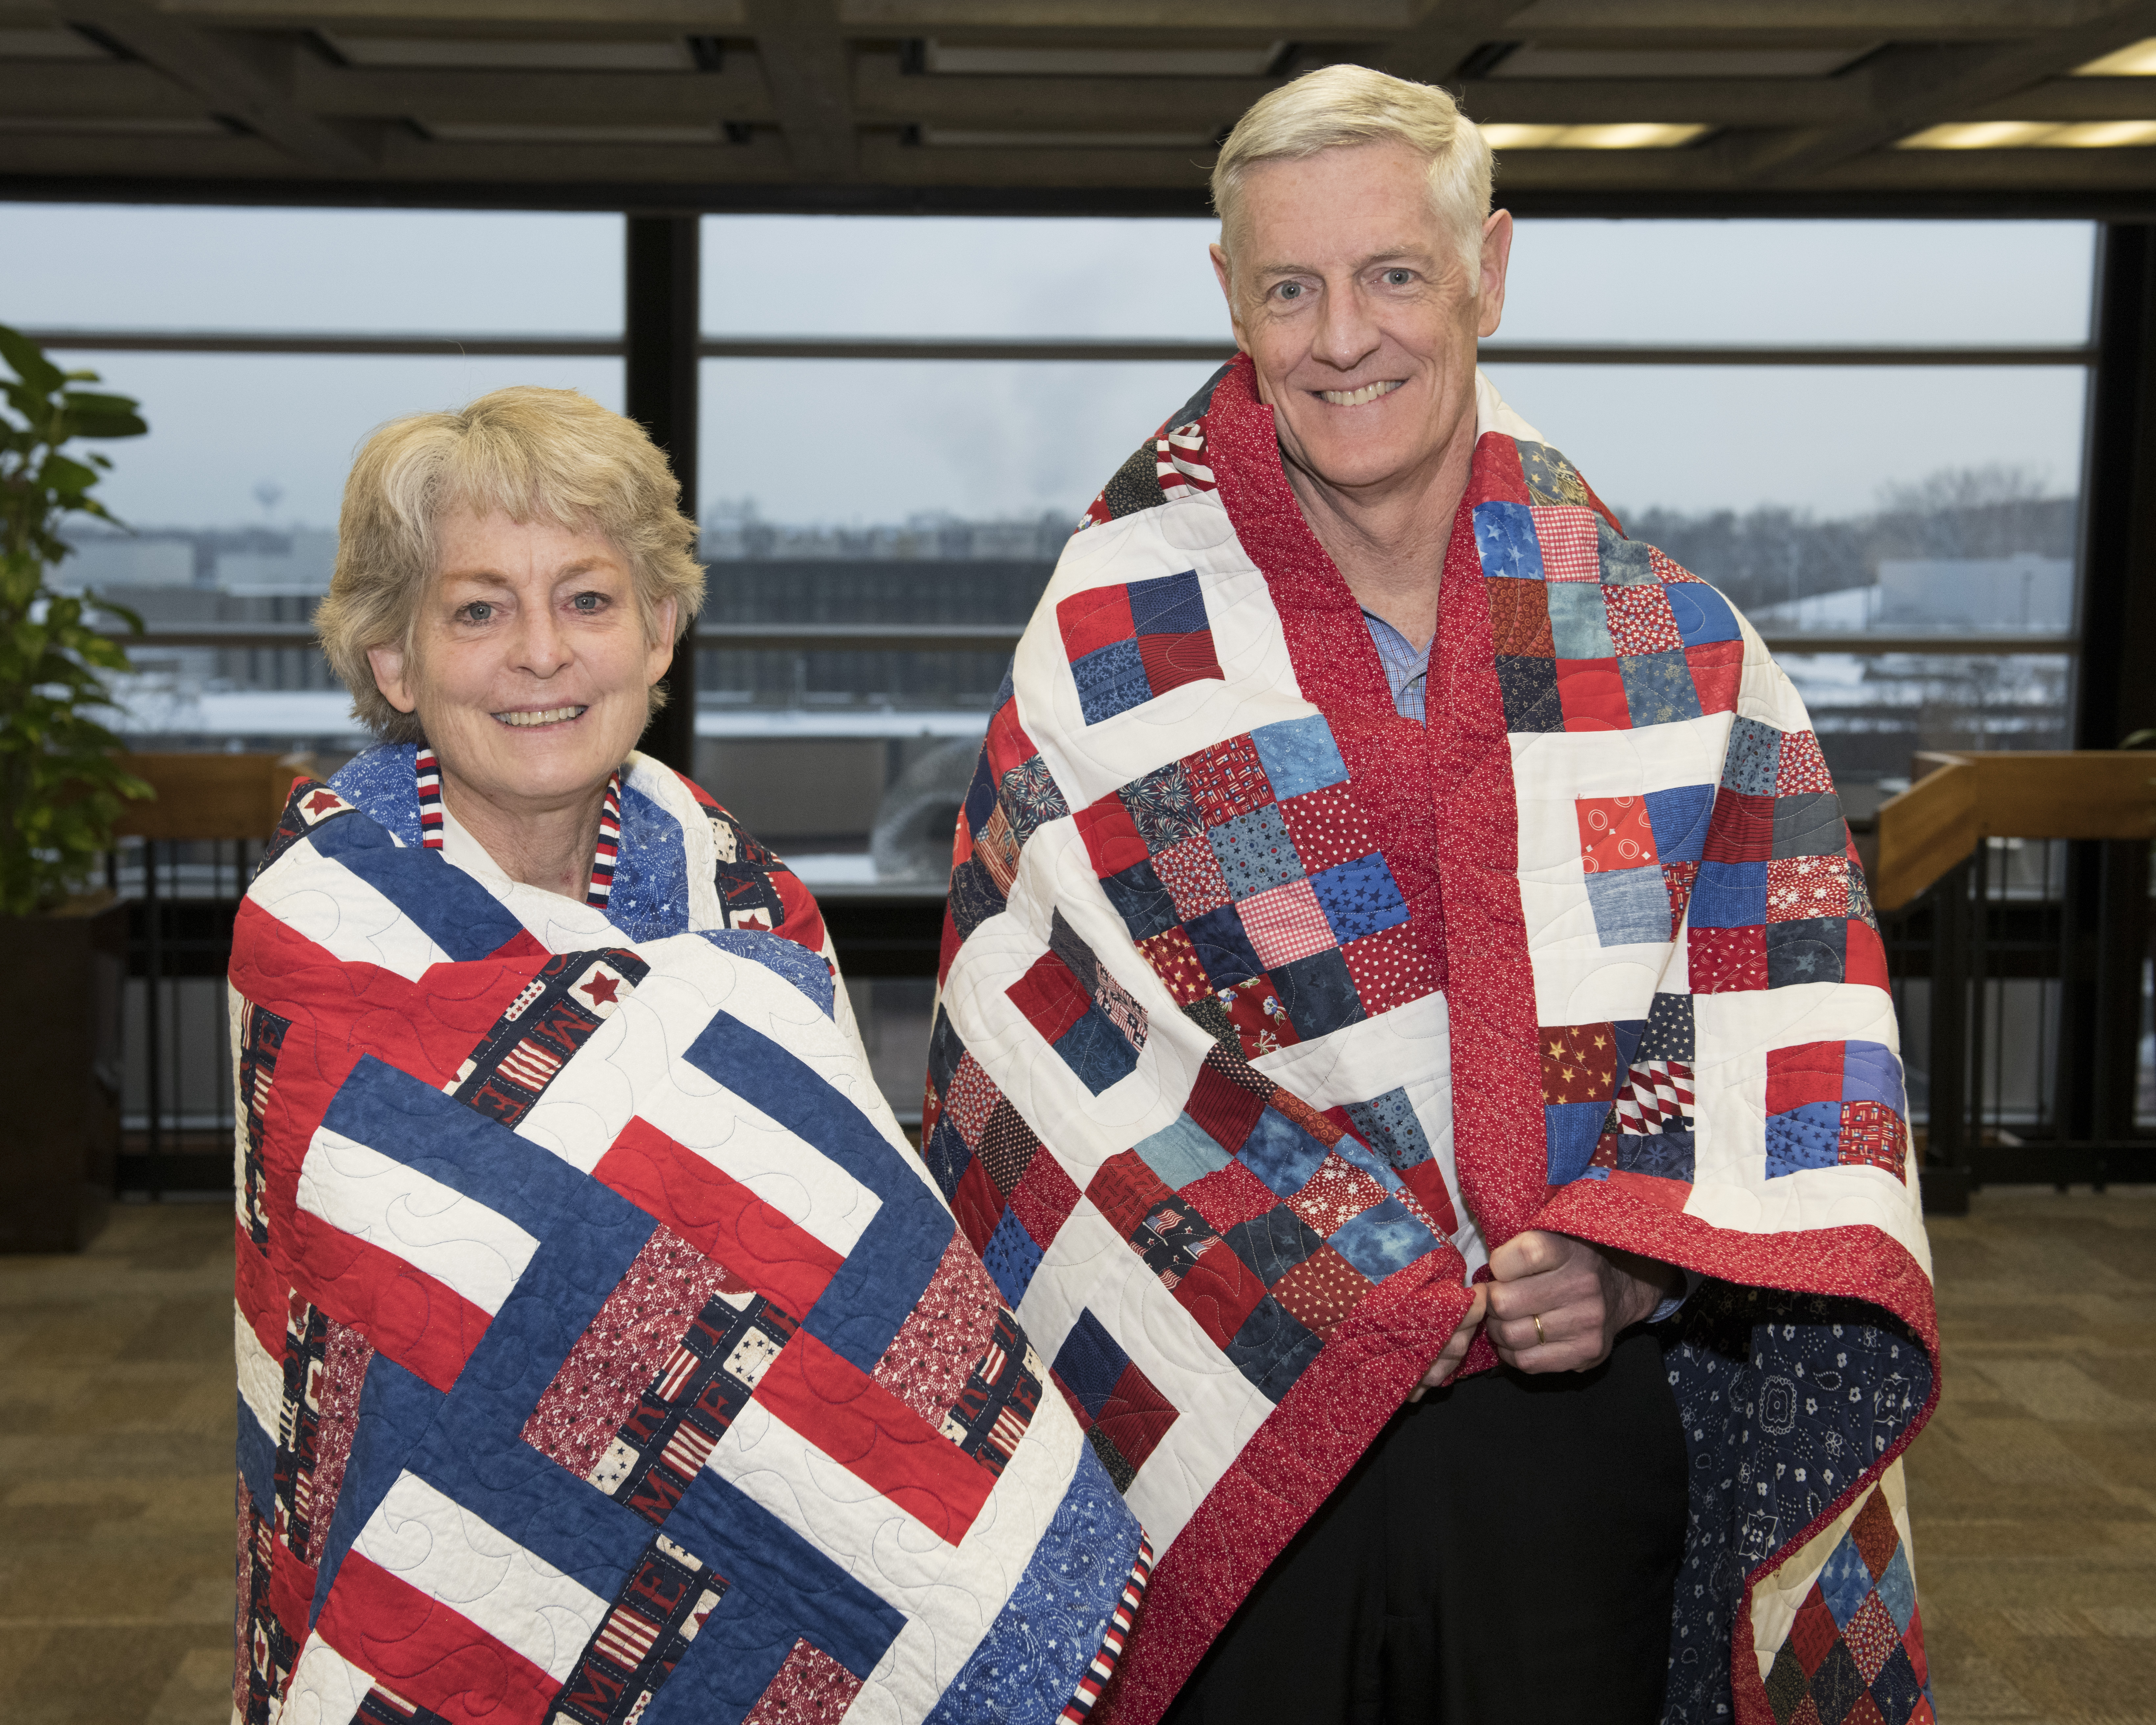 Chris Mossey and Kate Gregory receiving Quilts of Valor on November 29, 2018